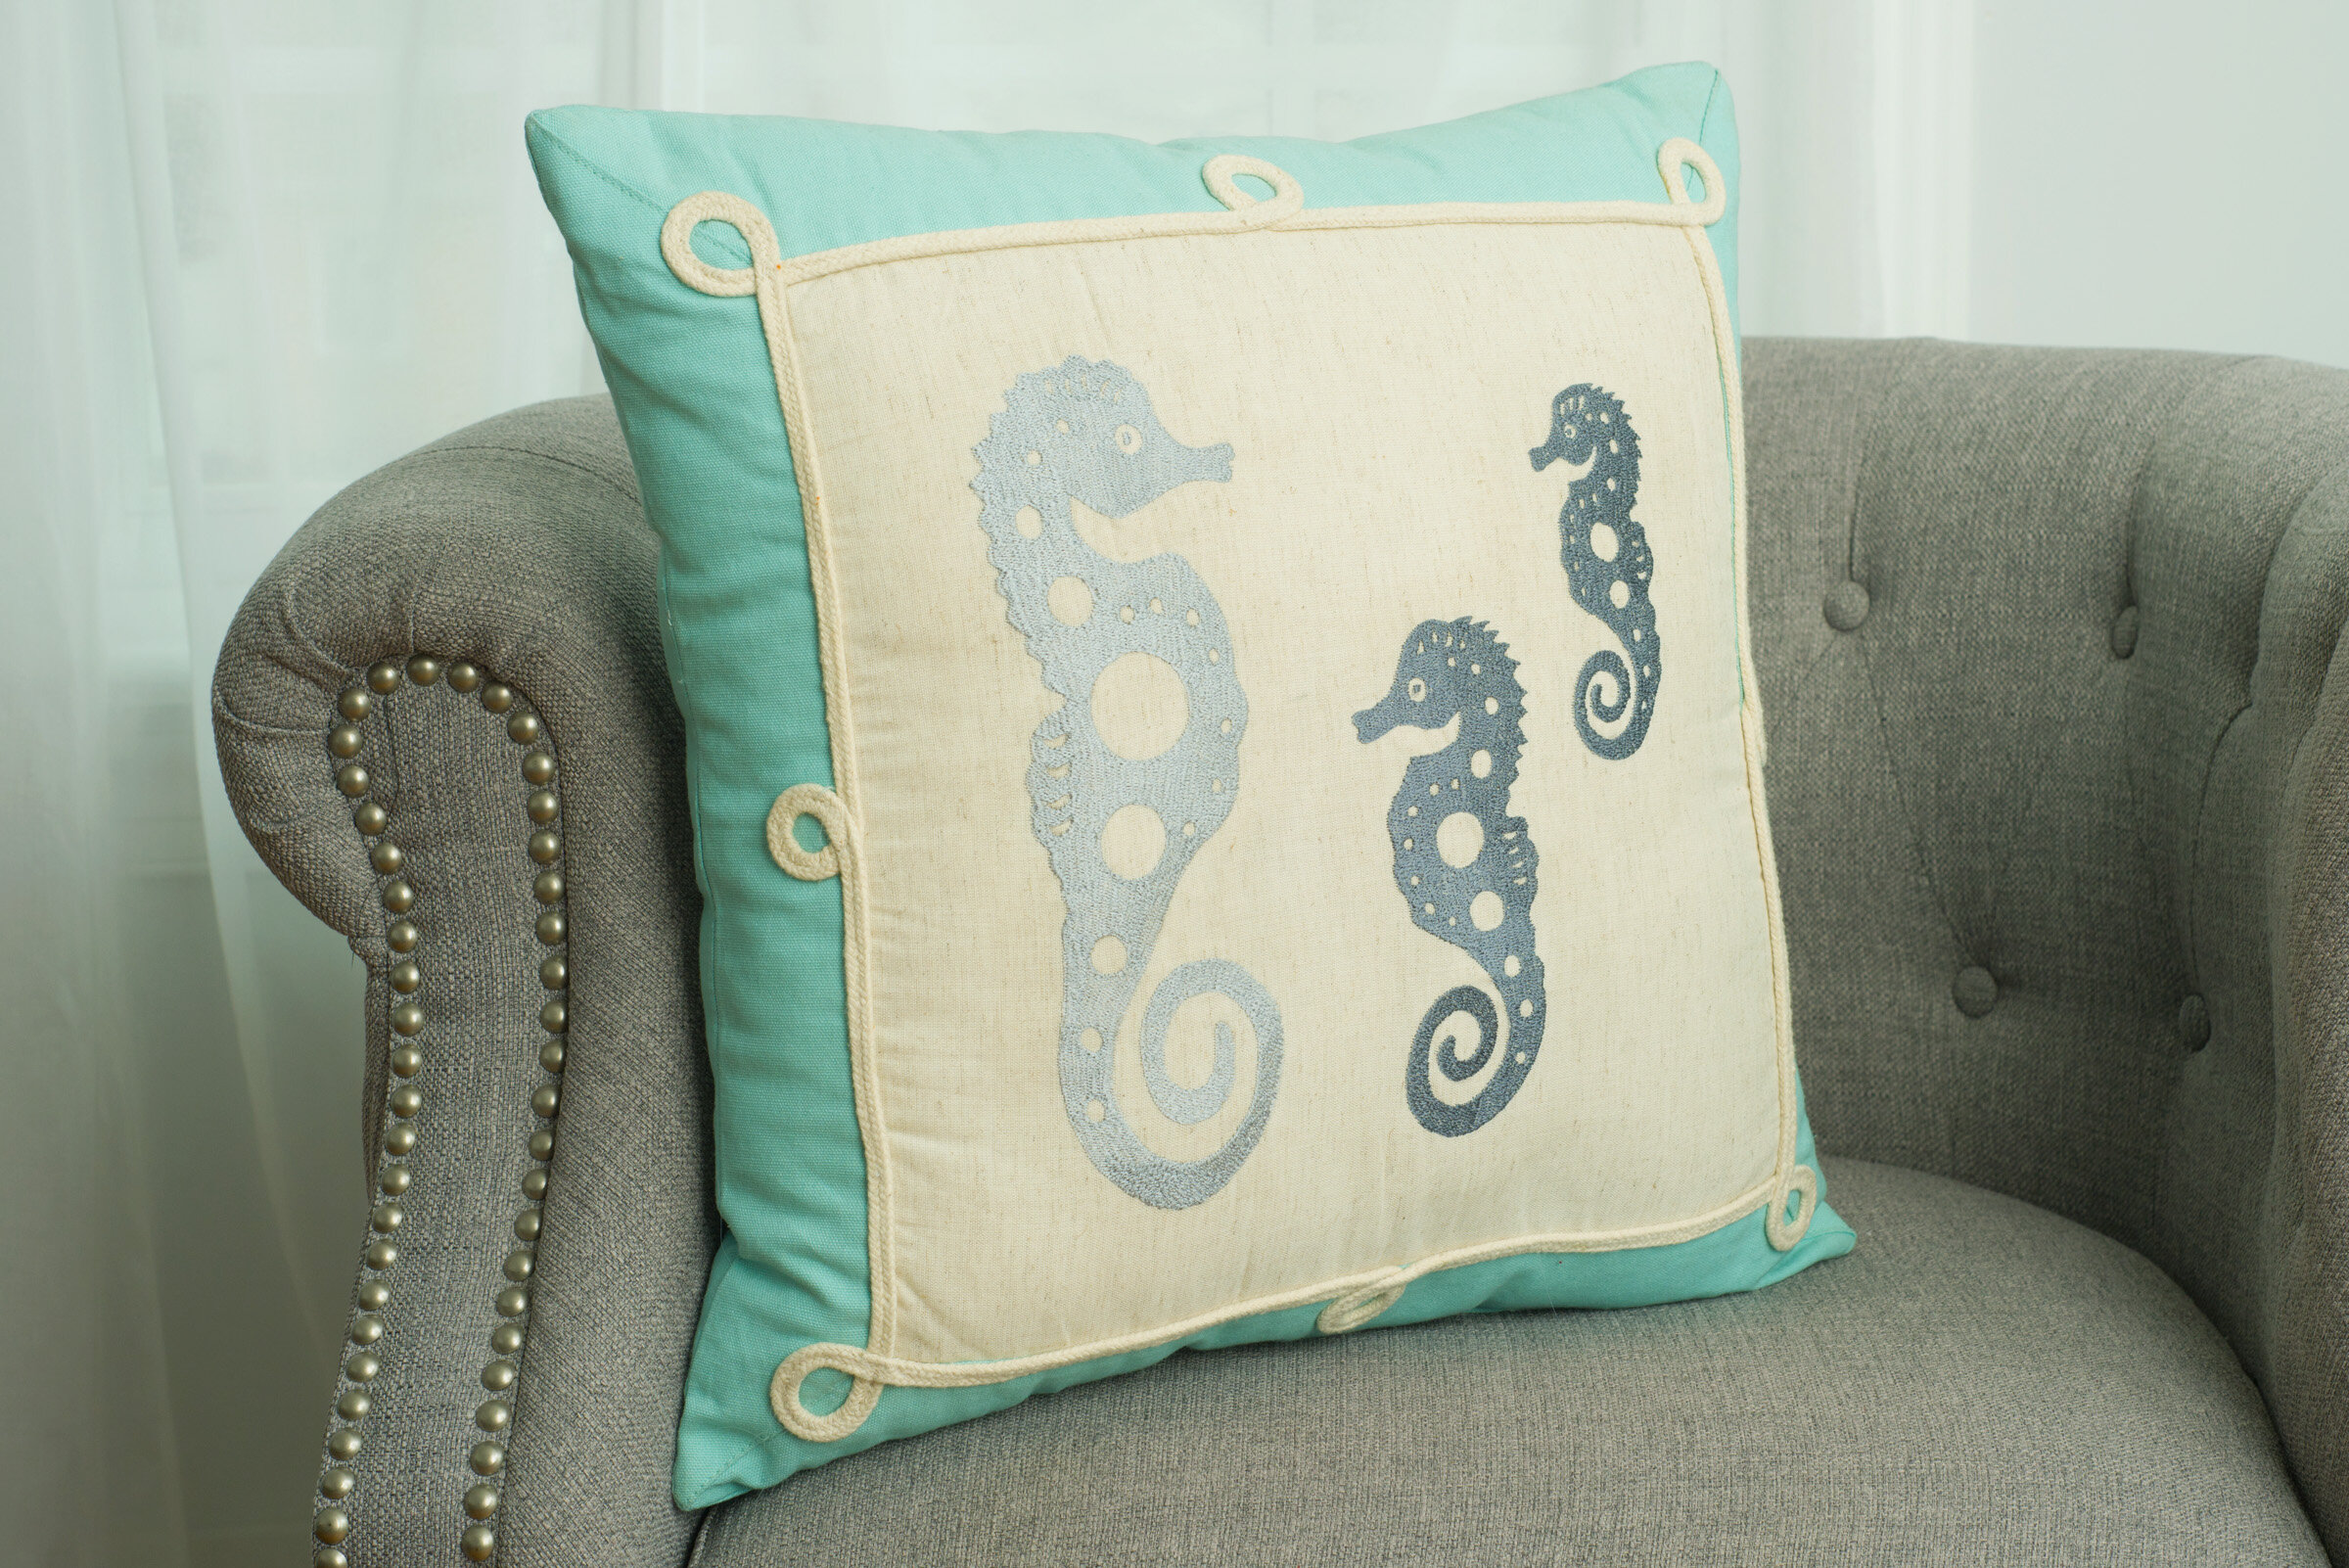 Highland Dunes Darin Seahorse Silhouette Decorative Cotton Throw Pillow Wayfair